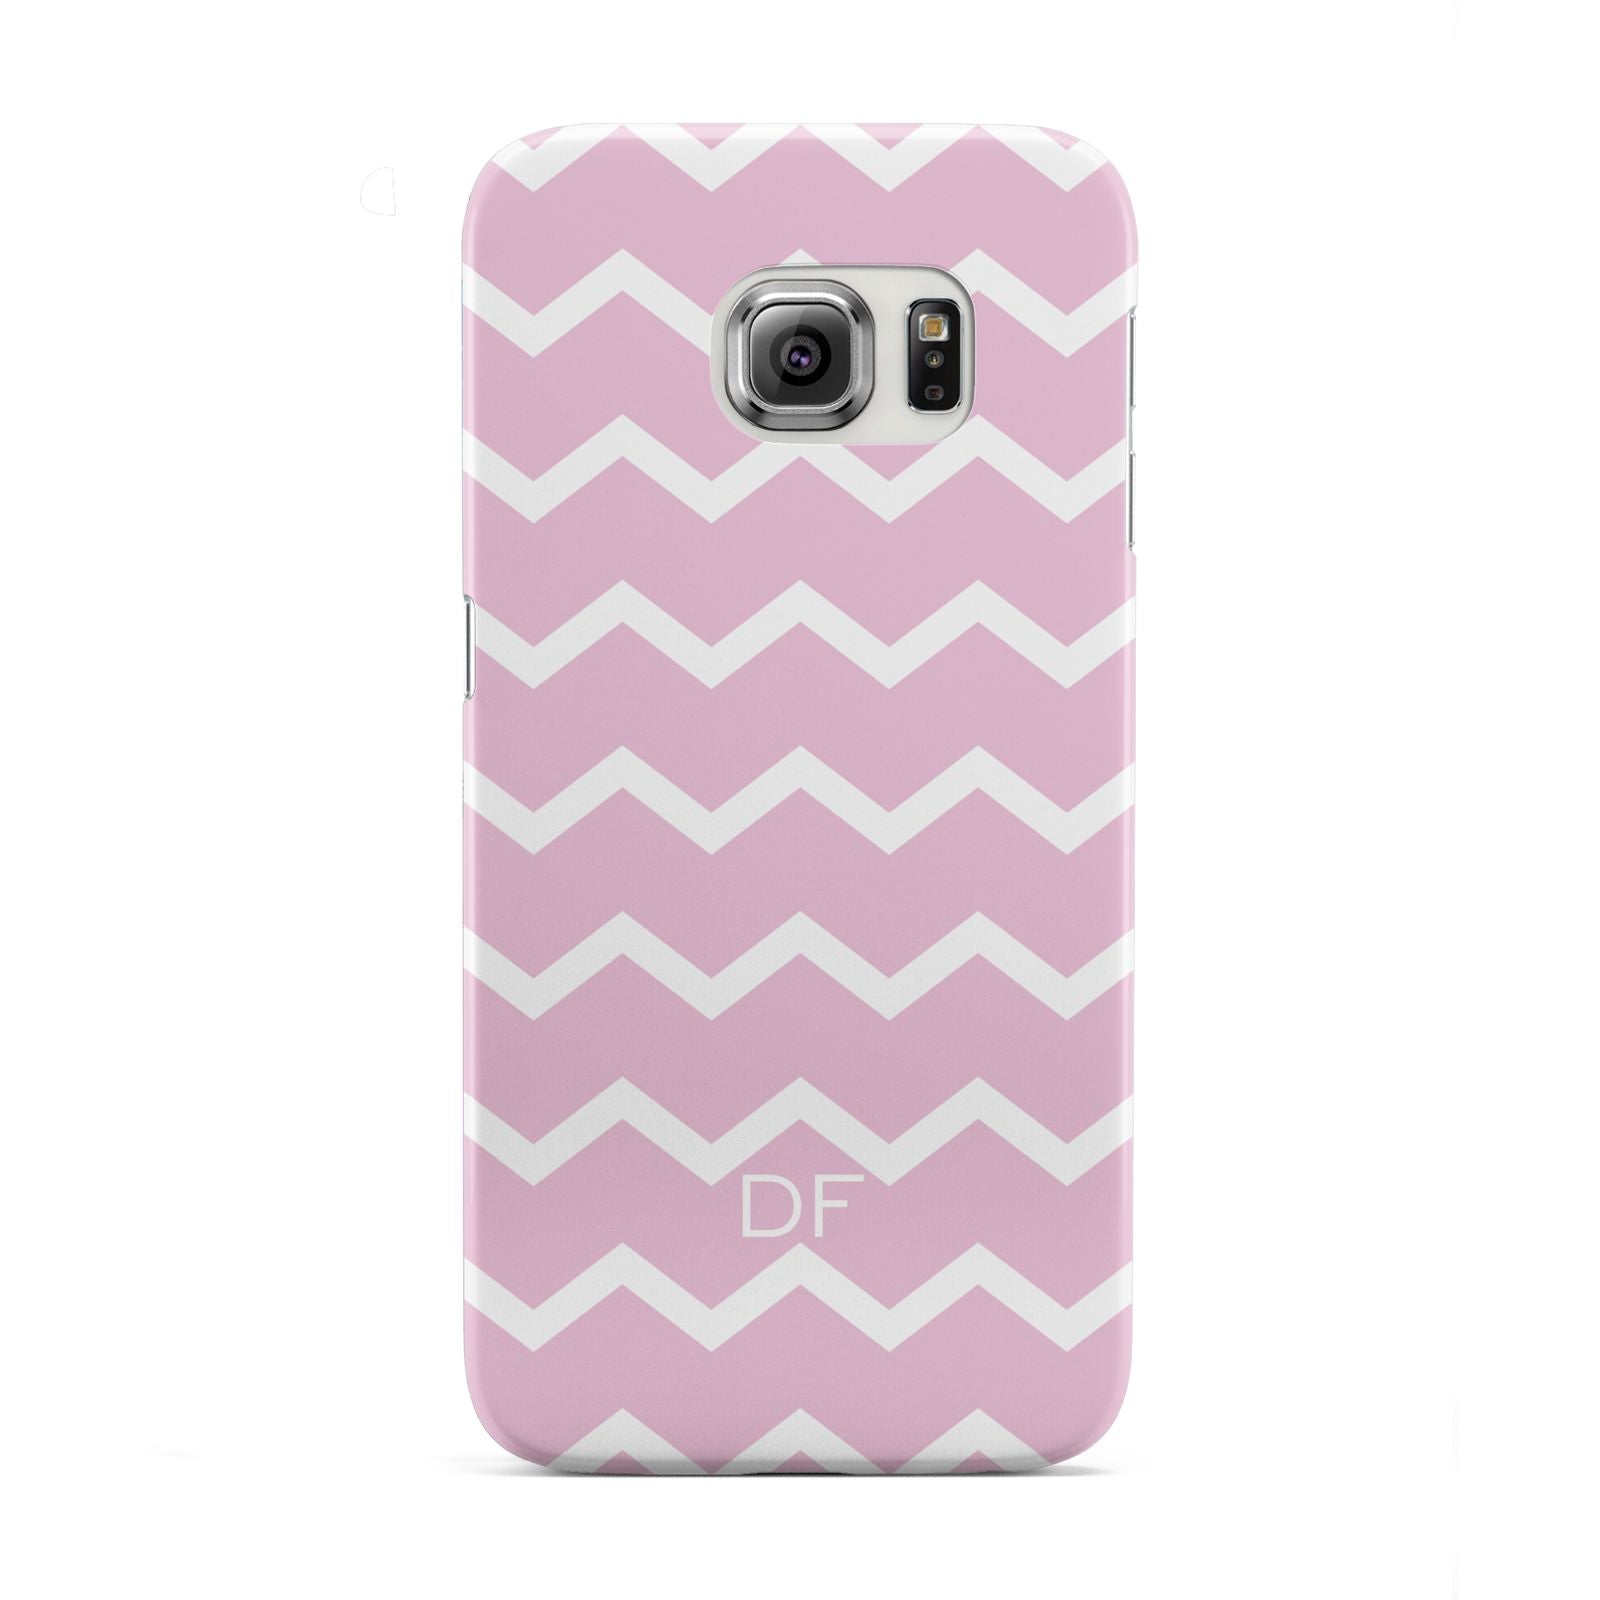 Personalised Chevron Pink Samsung Galaxy S6 Edge Case